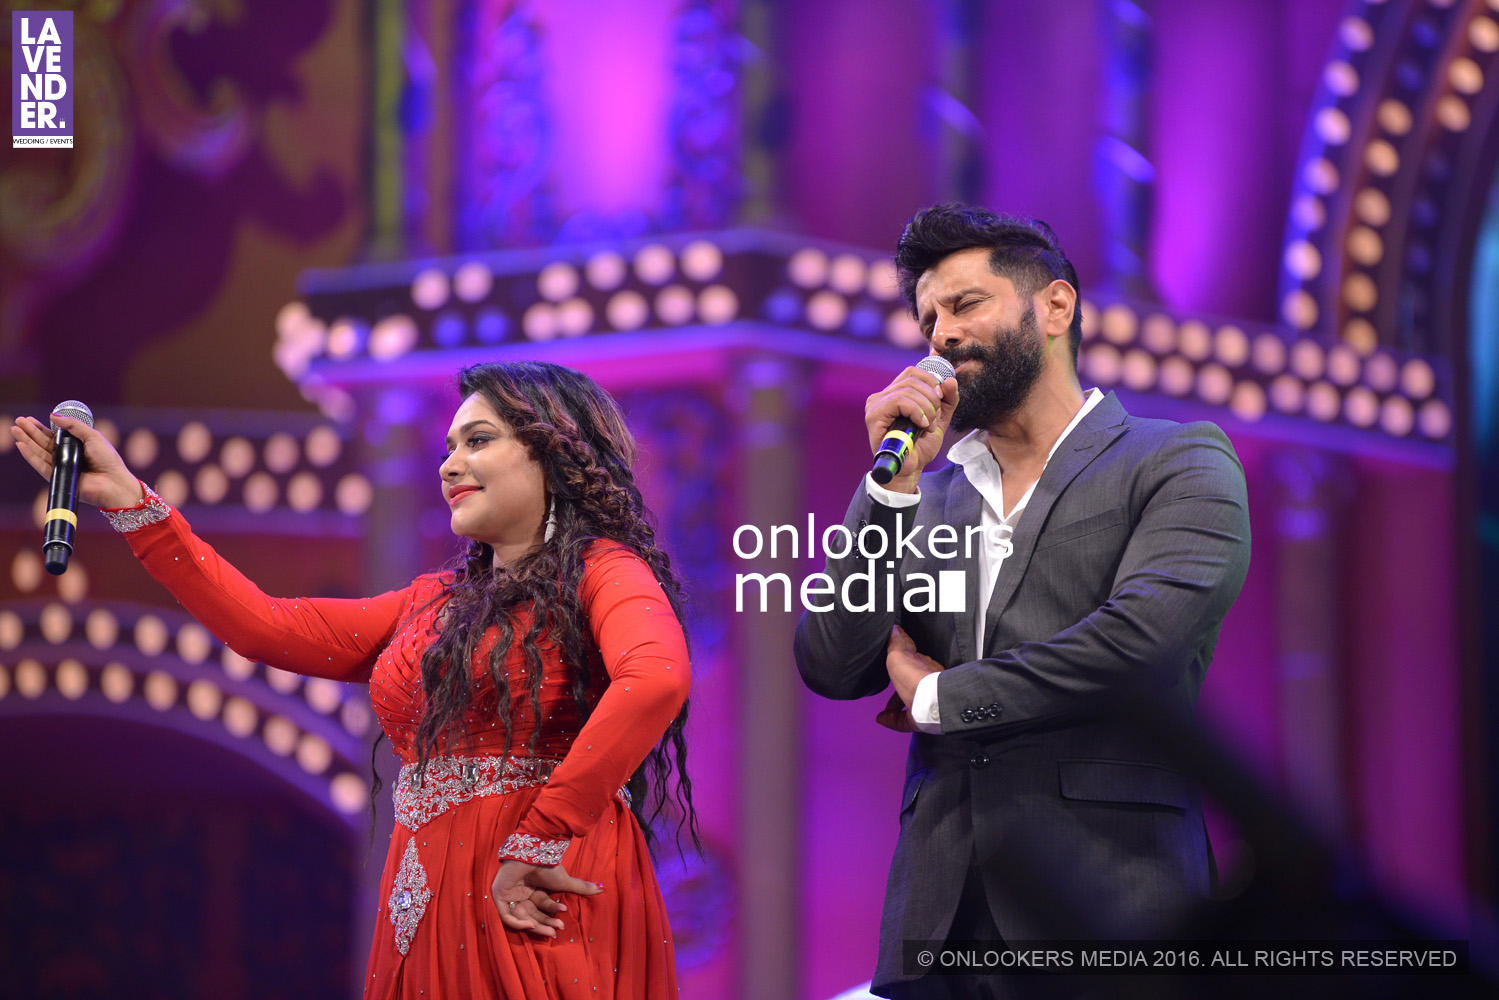 http://onlookersmedia.in/wp-content/uploads/2016/02/Vikram-at-Asianet-Film-Awards-2016-25.jpg